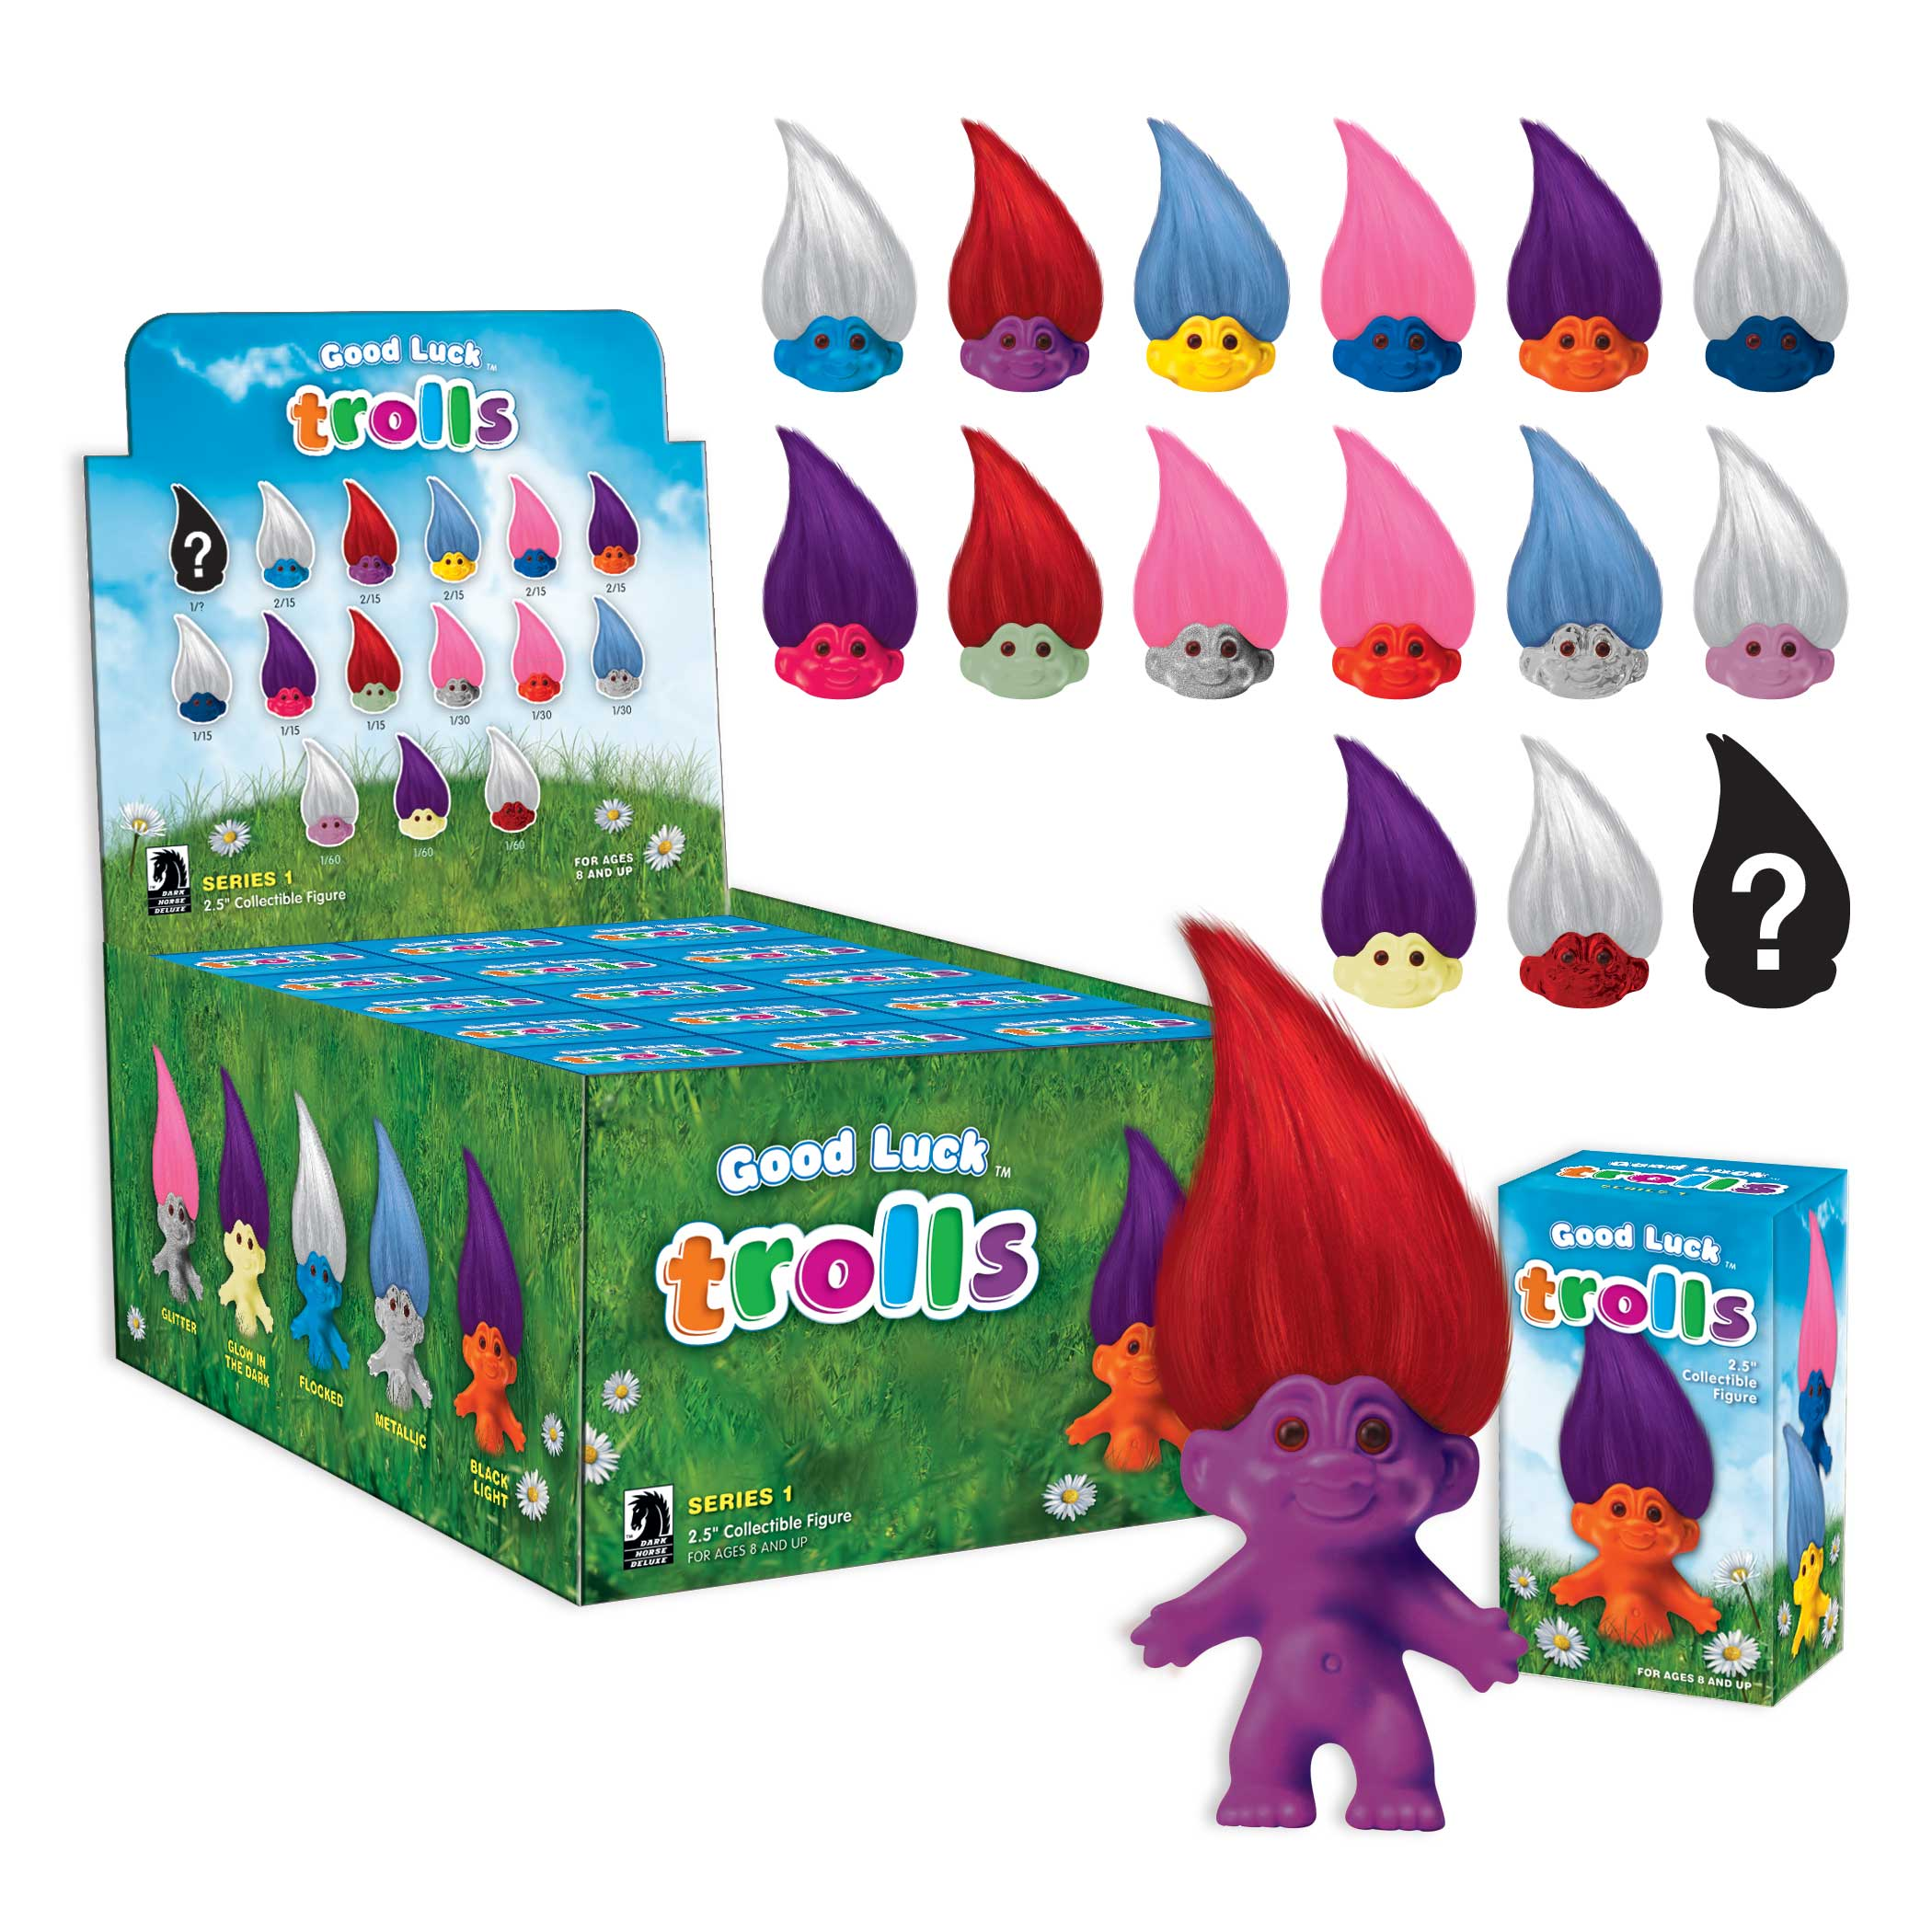 Dark Horse Deluxe Set To Release The First Good Luck Trolls Assortment On July 25 Review Fix